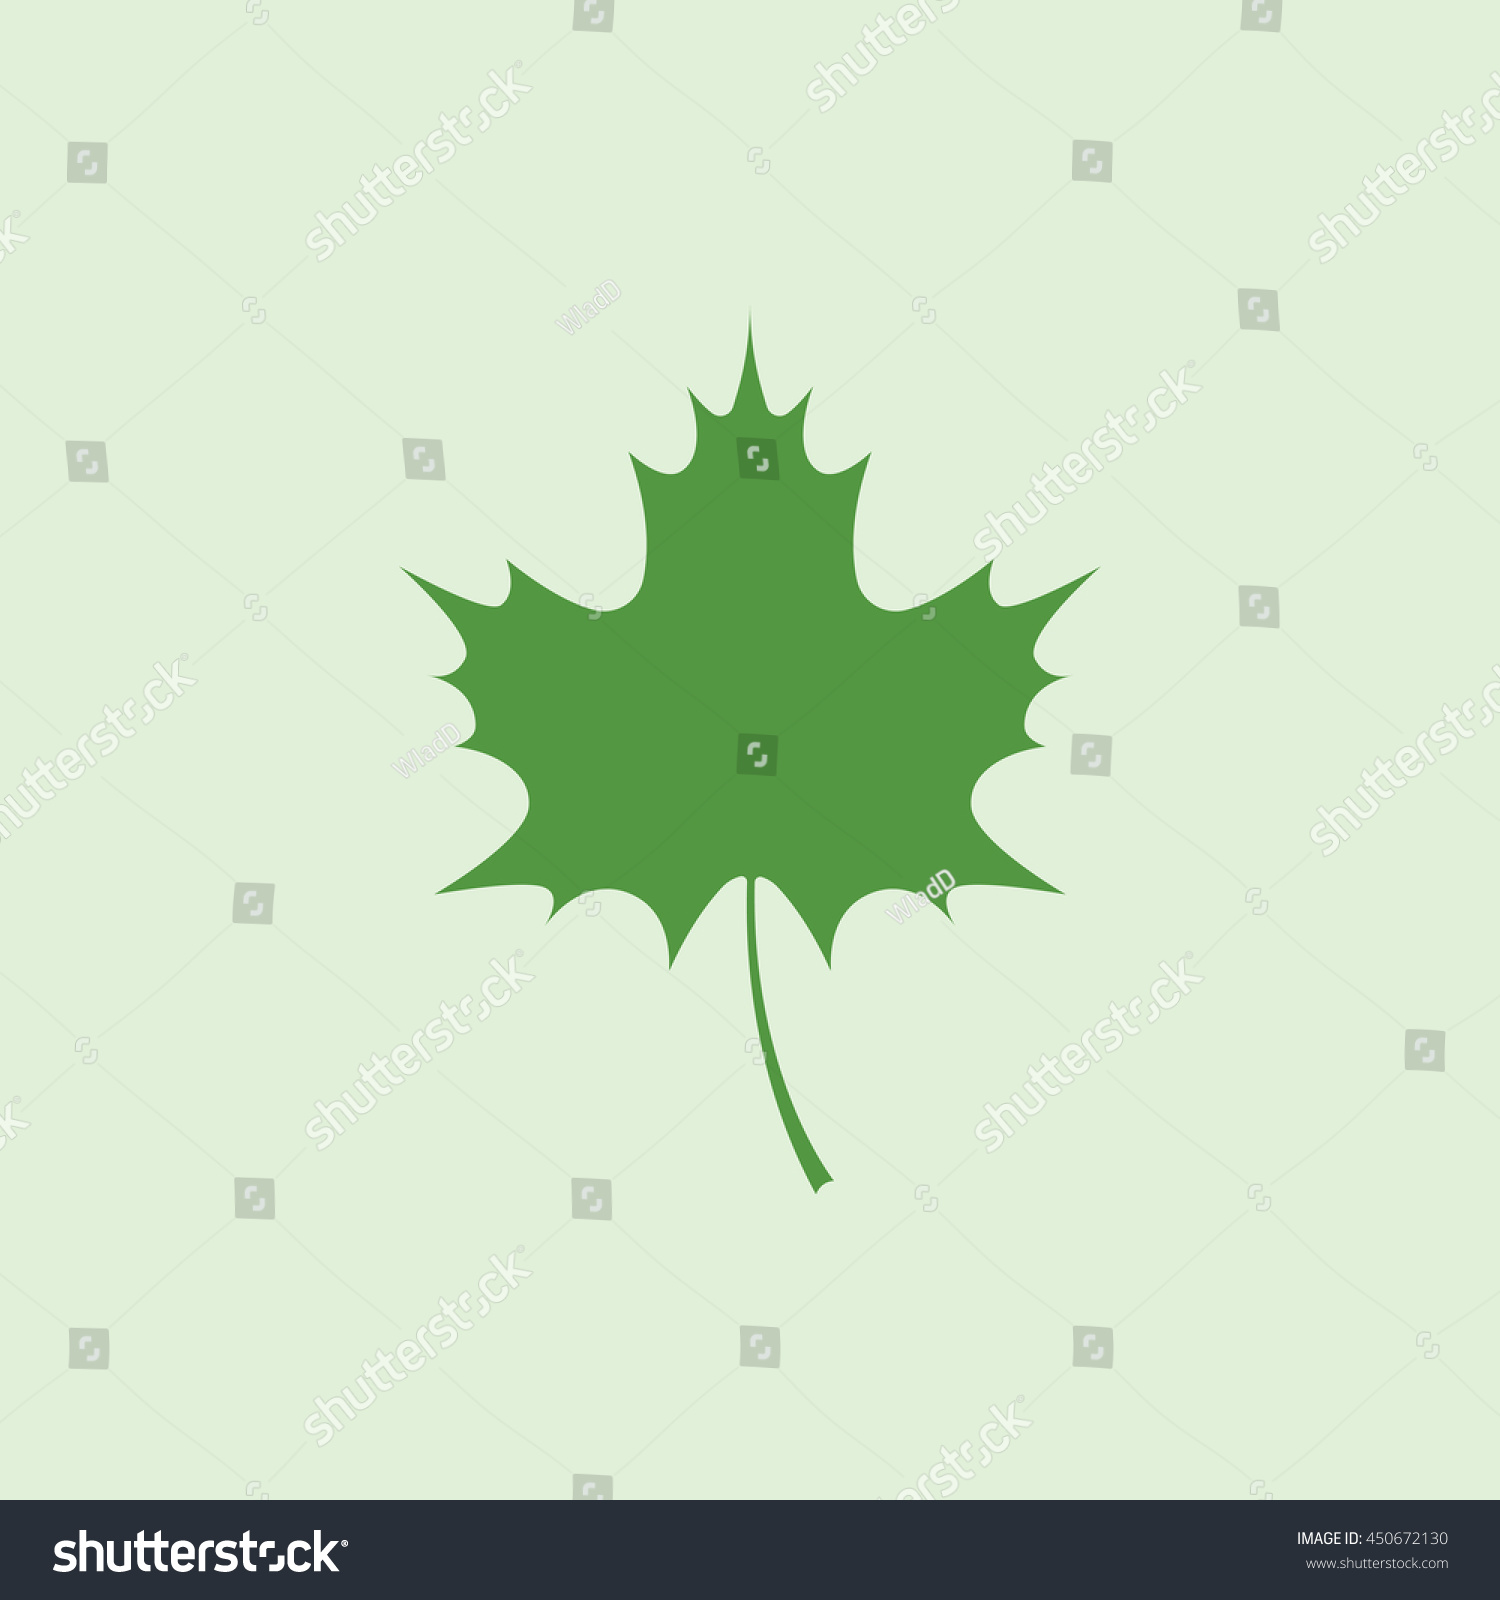 icon maple leaf stock vector 450672130 shutterstock